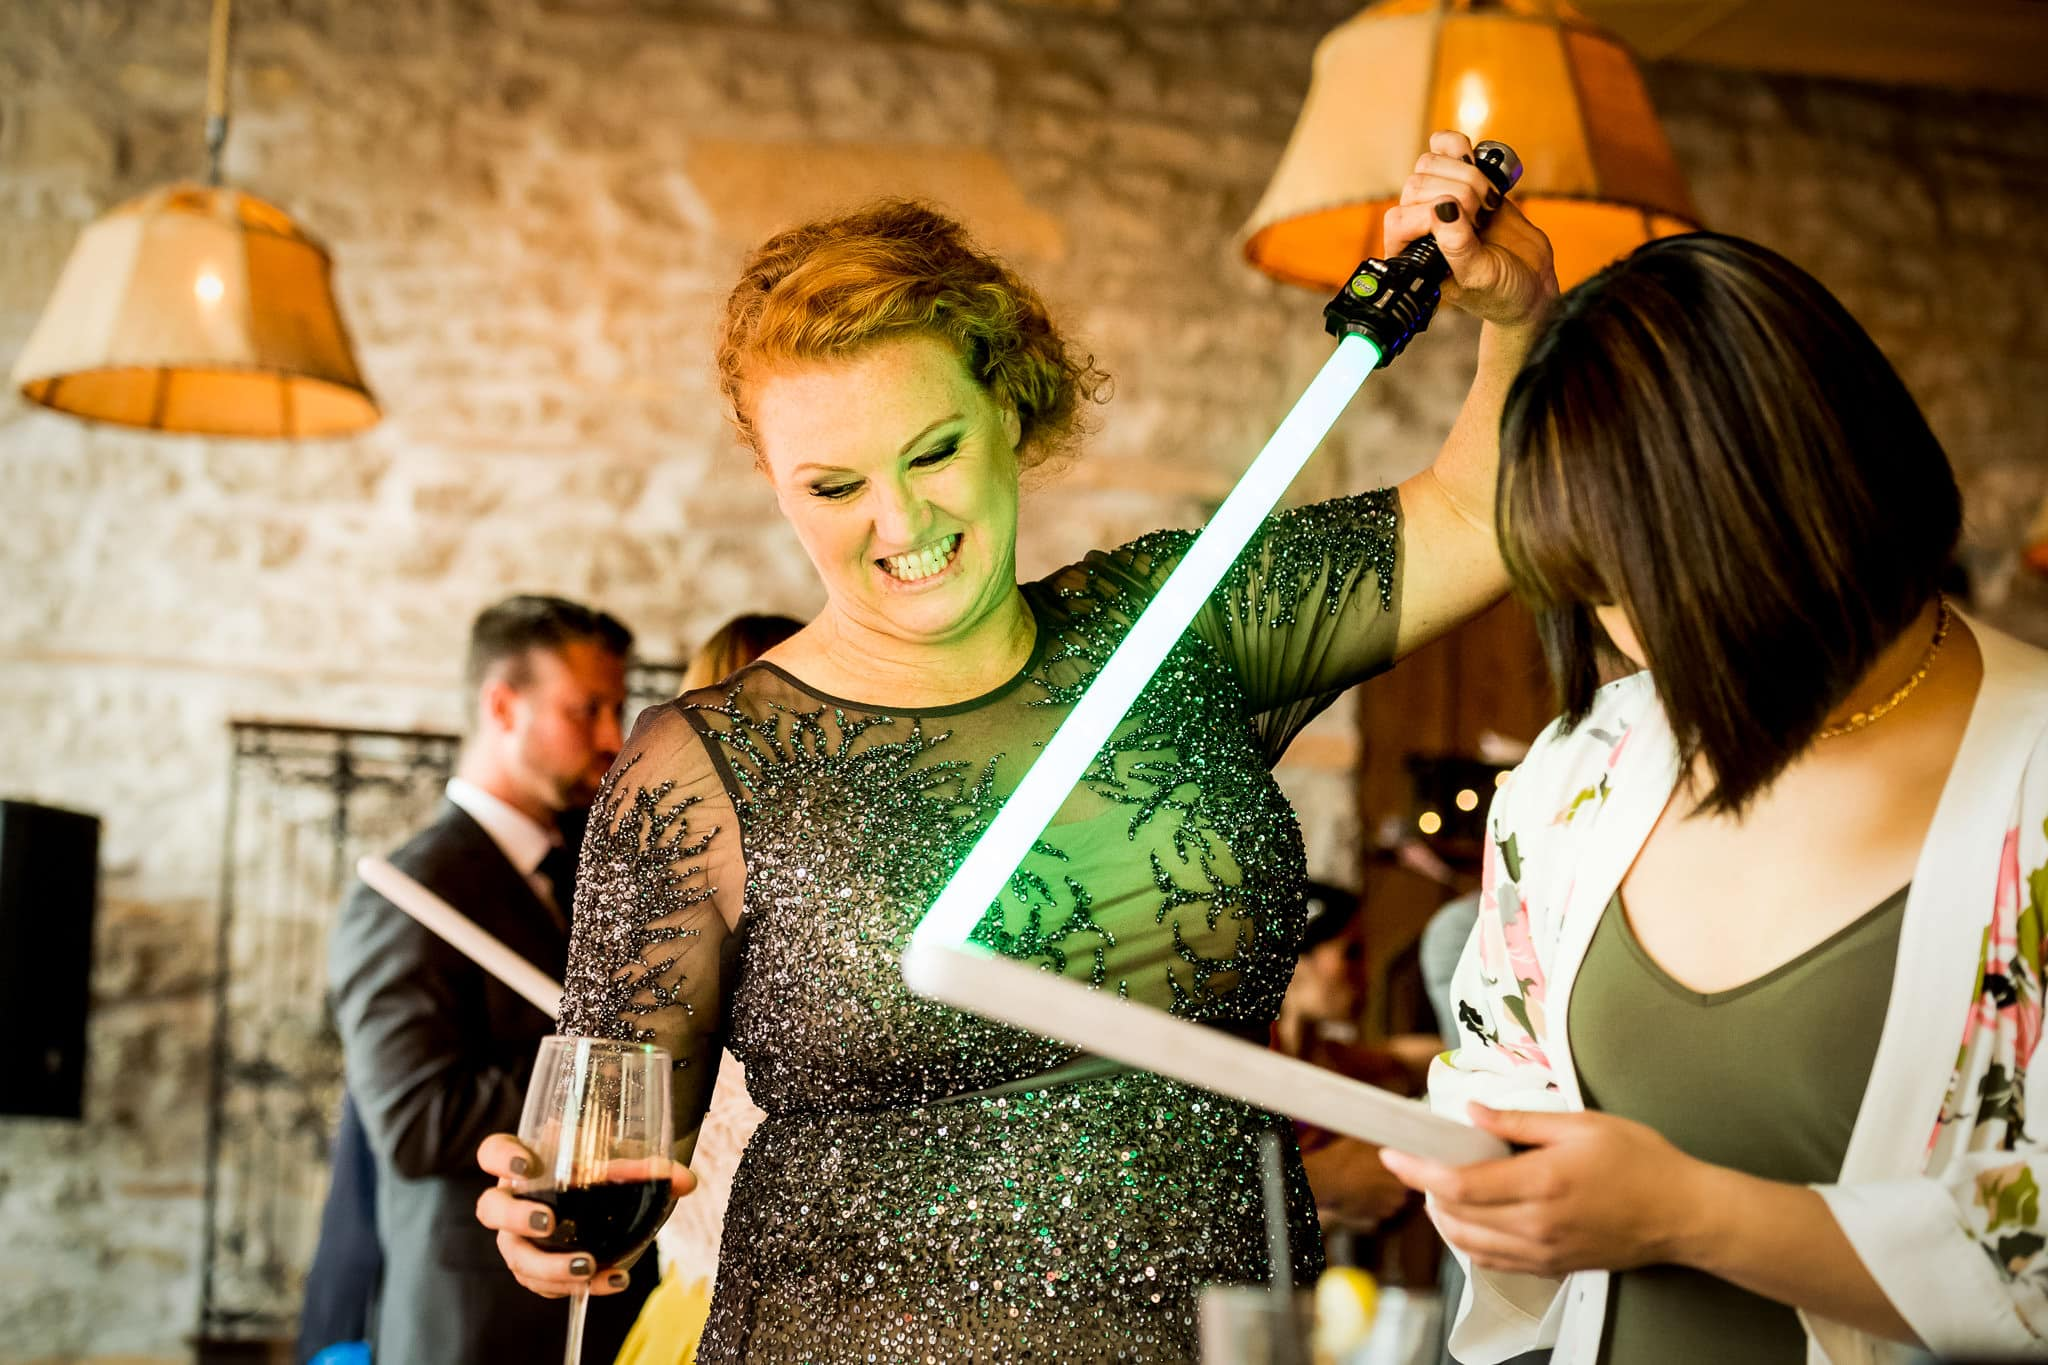 Star Wars Light Saber battle during the wedding reception in the River Room at Aster Cafe 6